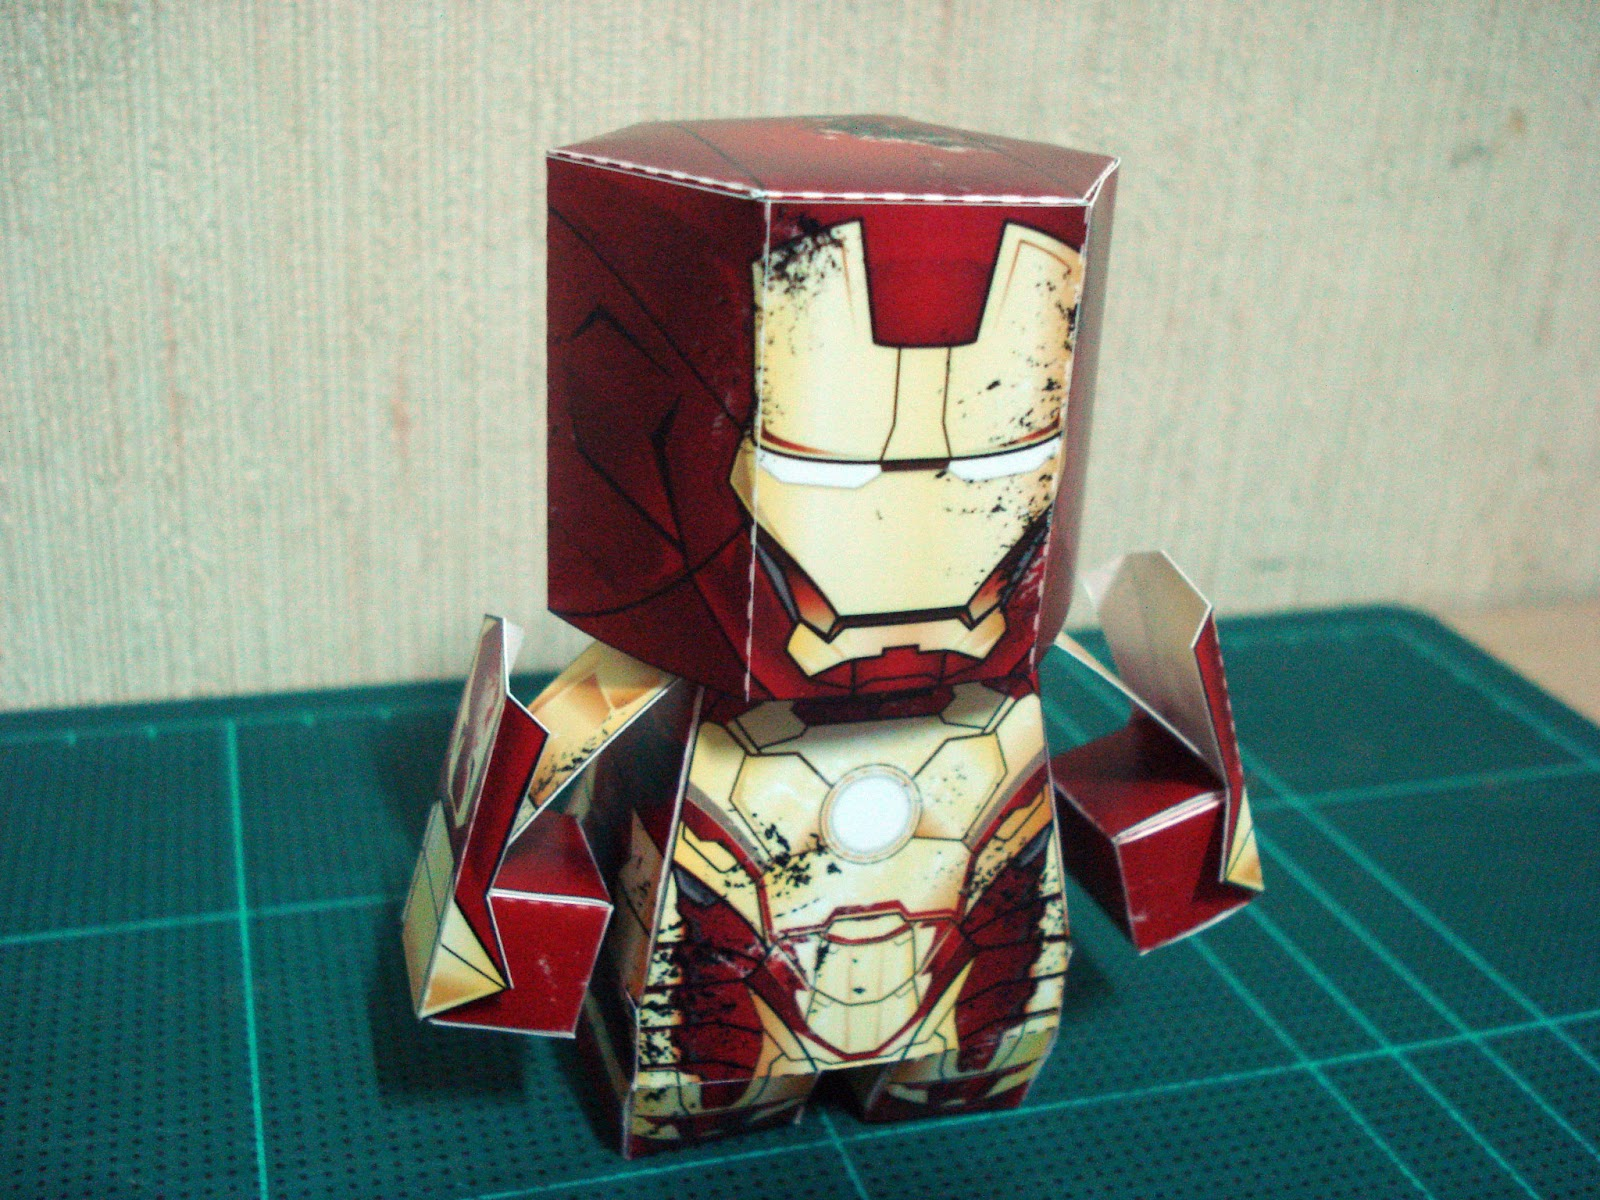 Iron Man 3 Papercraft Mark XLII Armor